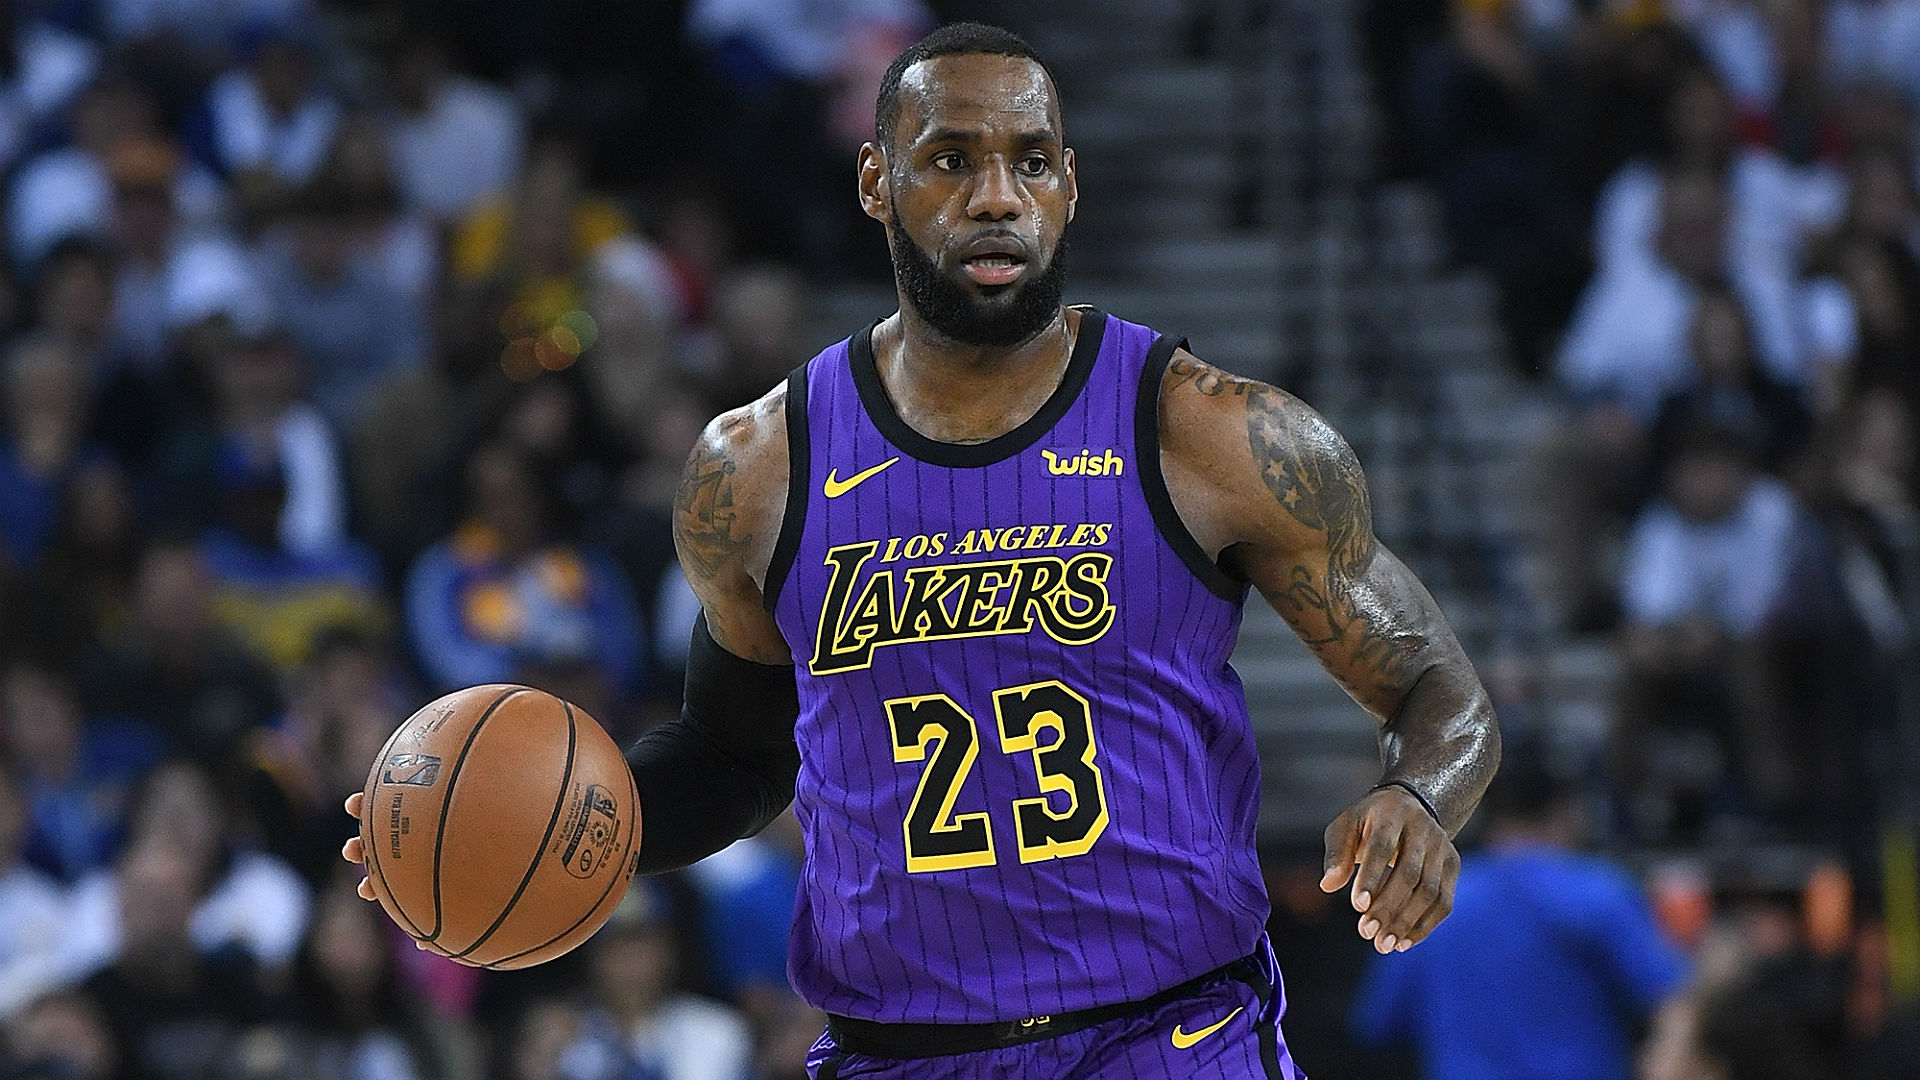 LeBron James injury update: Lakers star (groin) 'dodged a bullet,'